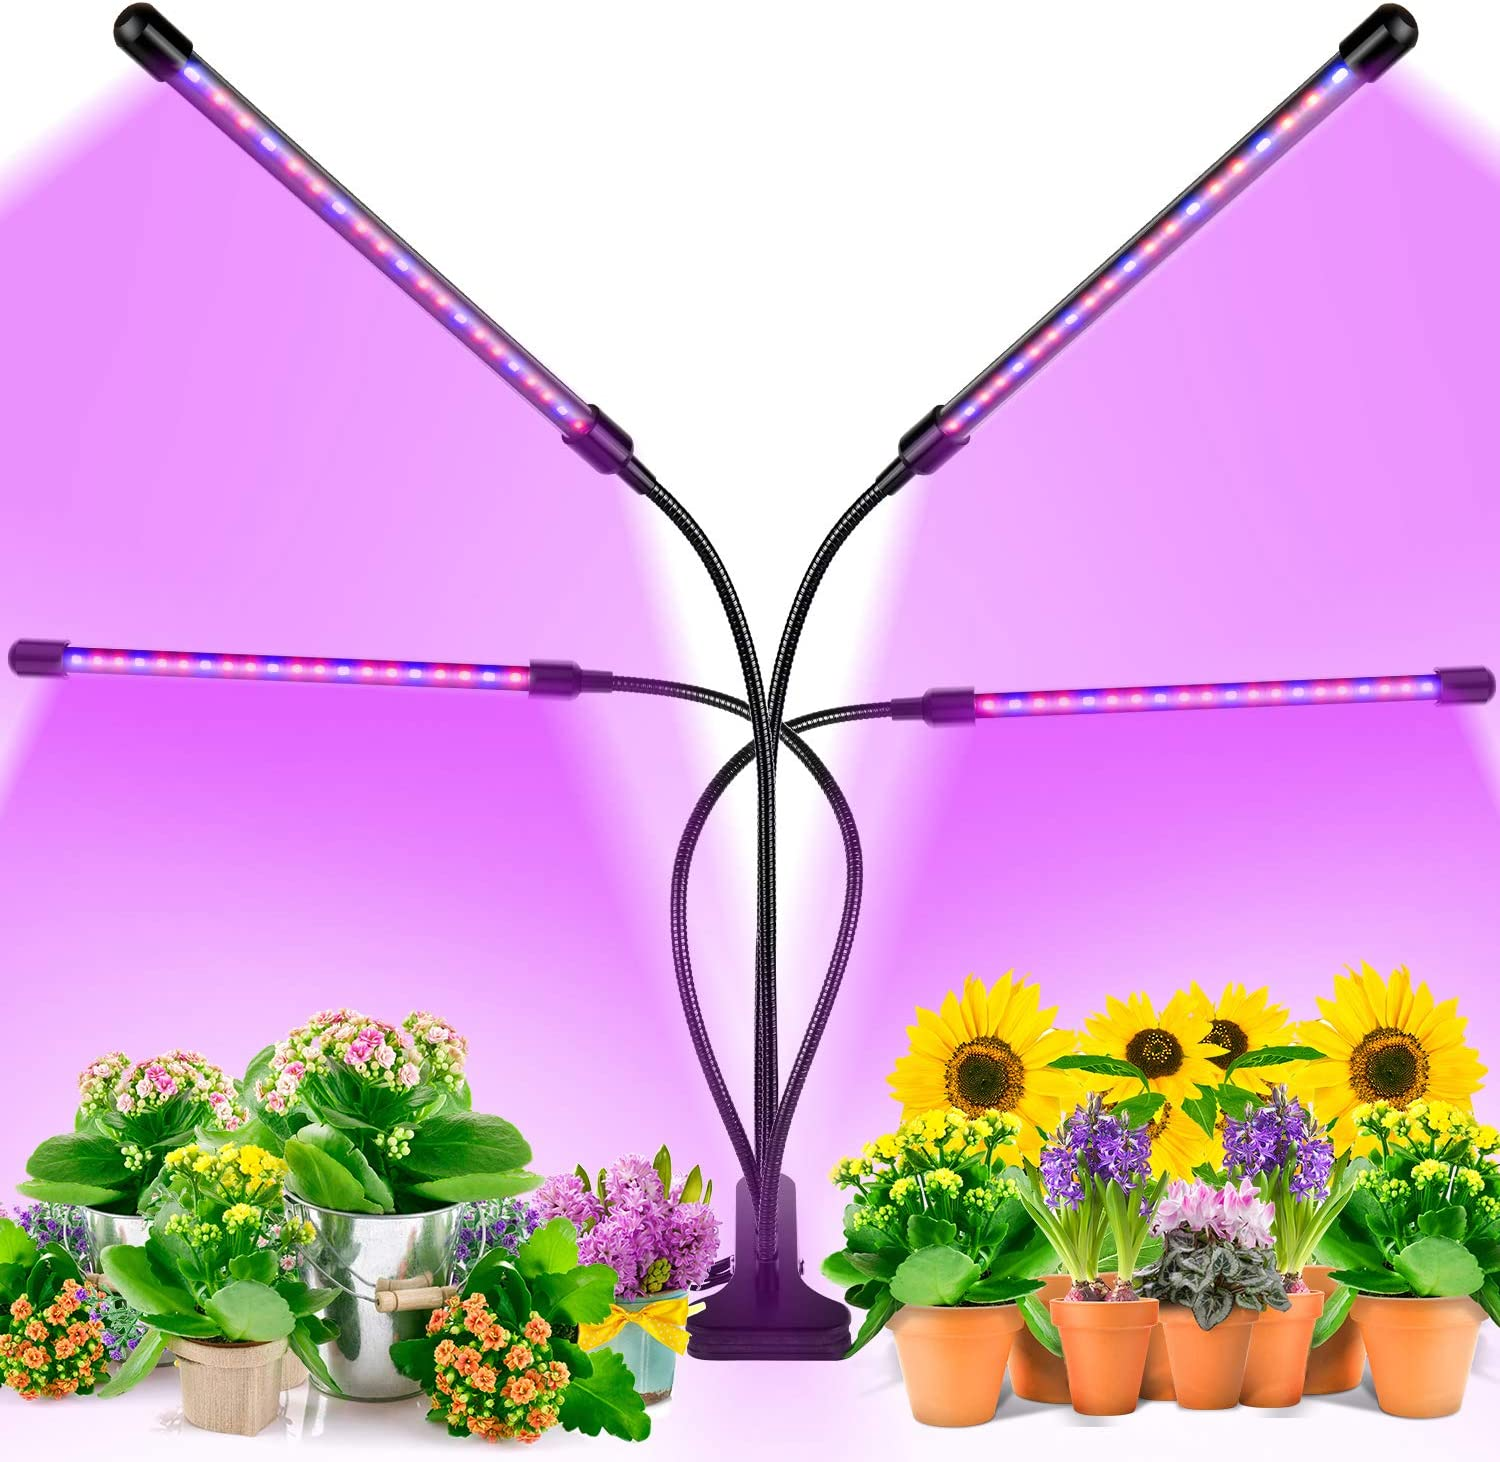 EZORKAS Dimmable Levels Plant Grow Lights